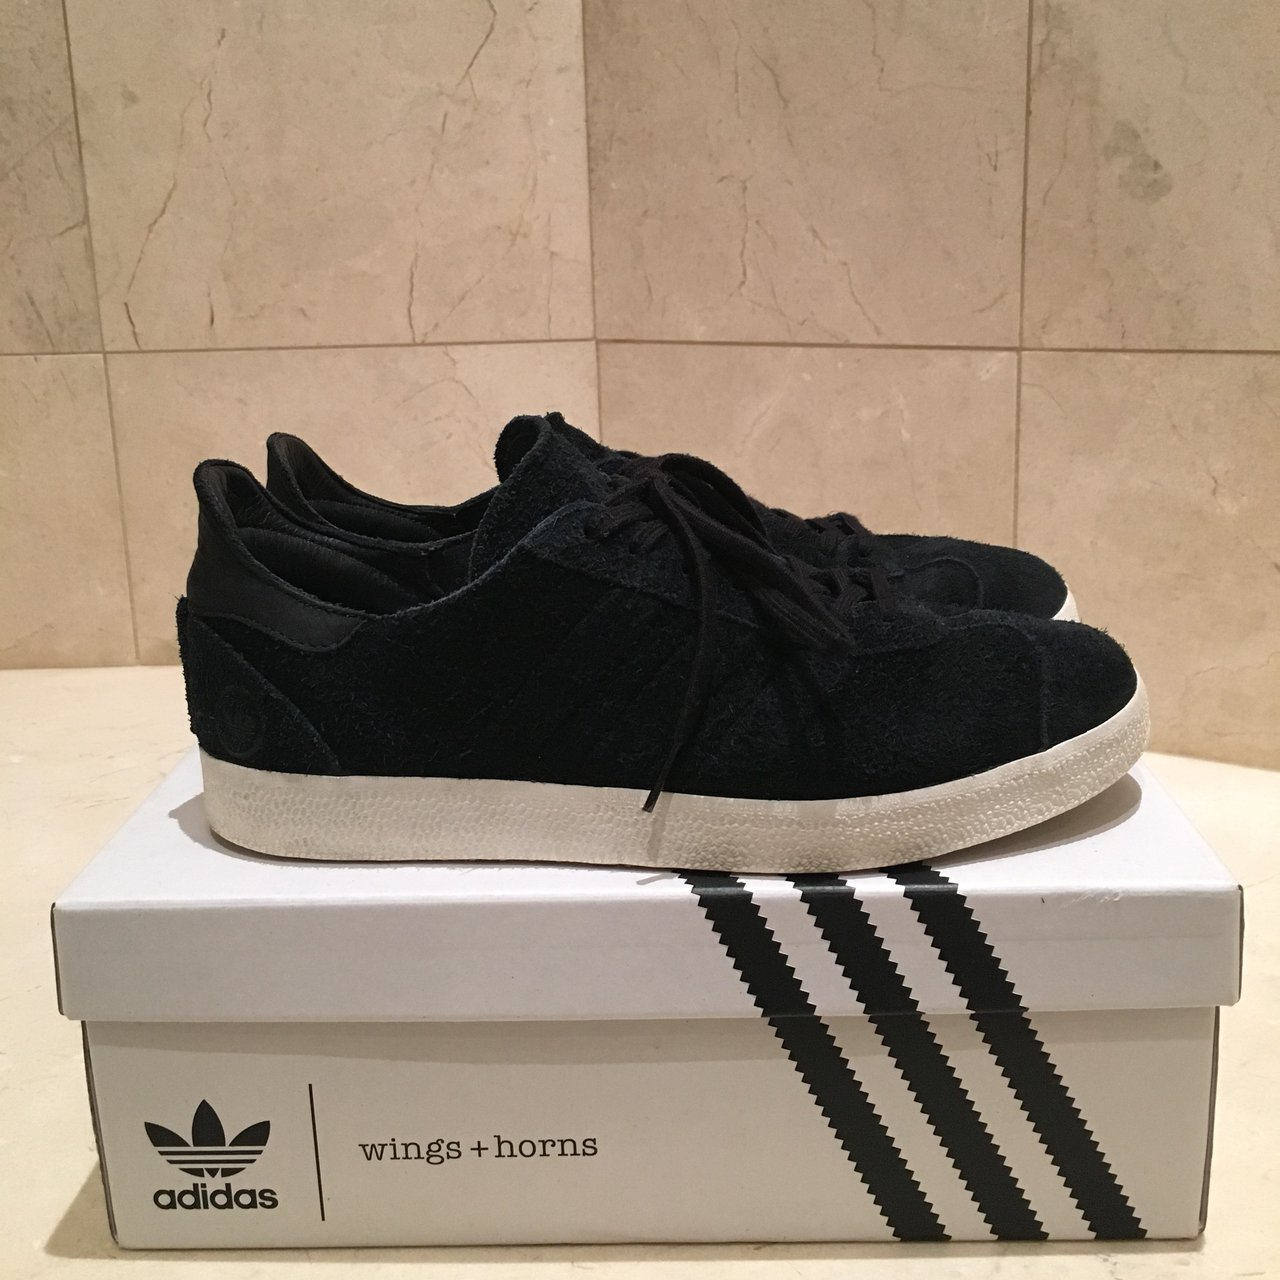 Adidas Campus Wings + Horns collab Size  9 These shoes I - Depop 78872dd06e15